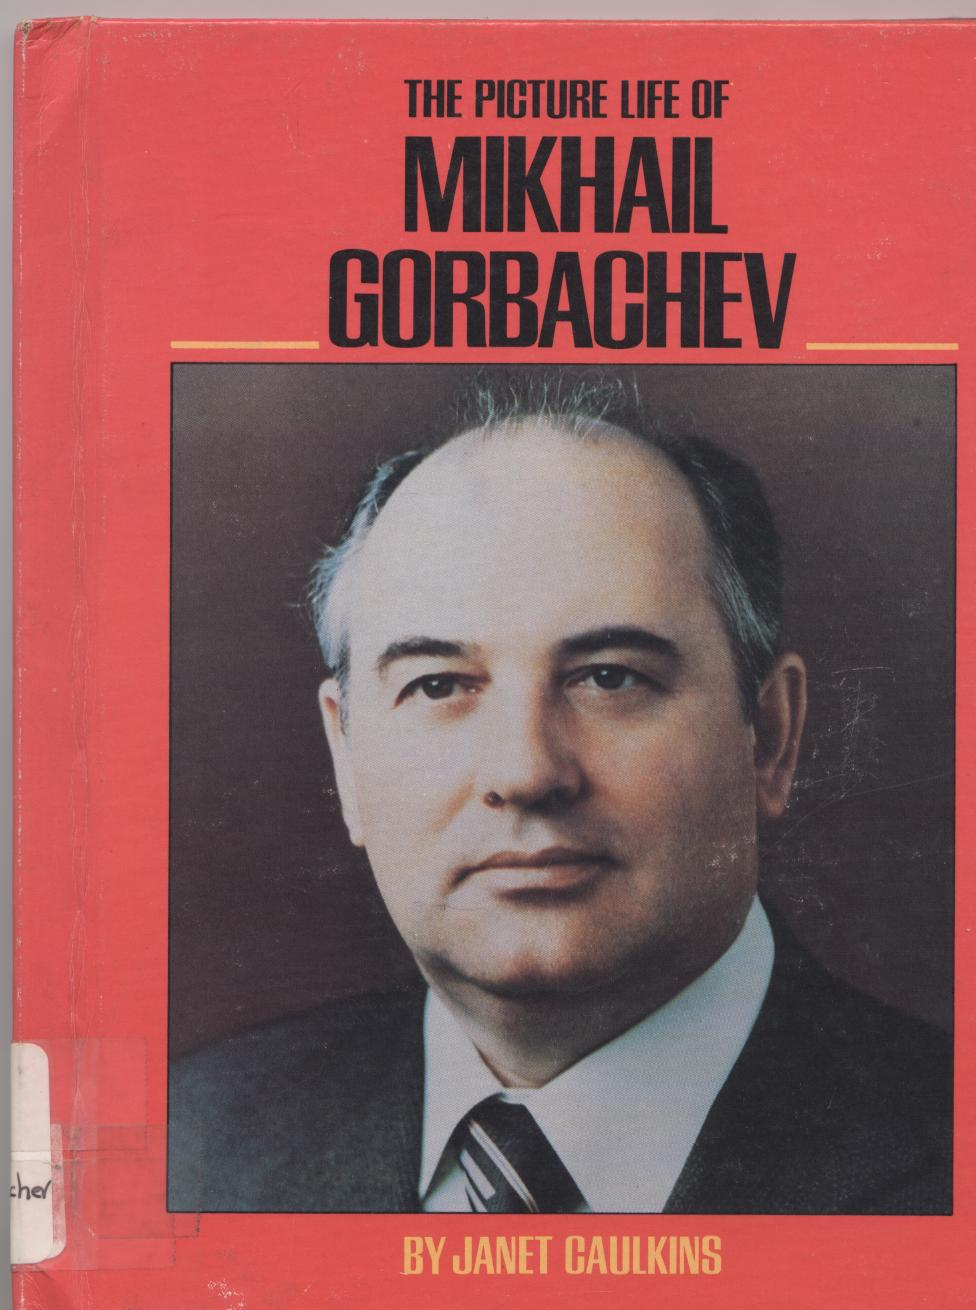 the life of mikhail gorbachev Mikhail sergeyevich gorbachev, the leader of the soviet union during a period   of the soviet leader was thomas g butson, gorbachev: a biography (1985.